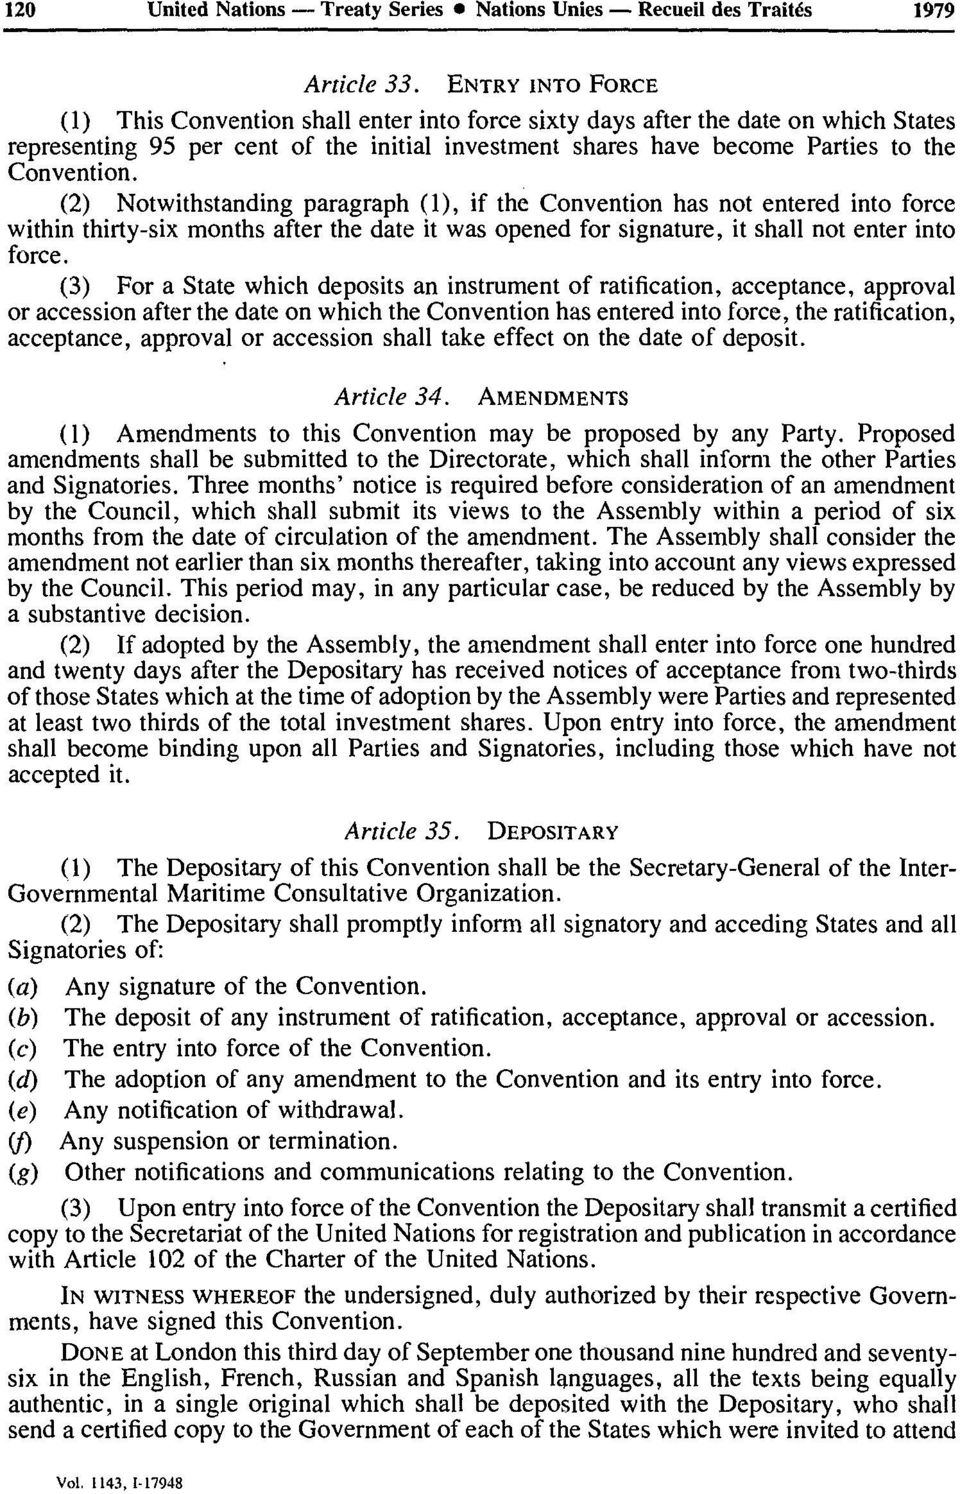 (2) Notwithstanding paragraph (1), if the Convention has not entered into force within thirty-six months after the date it was opened for signature, it shall not enter into force.